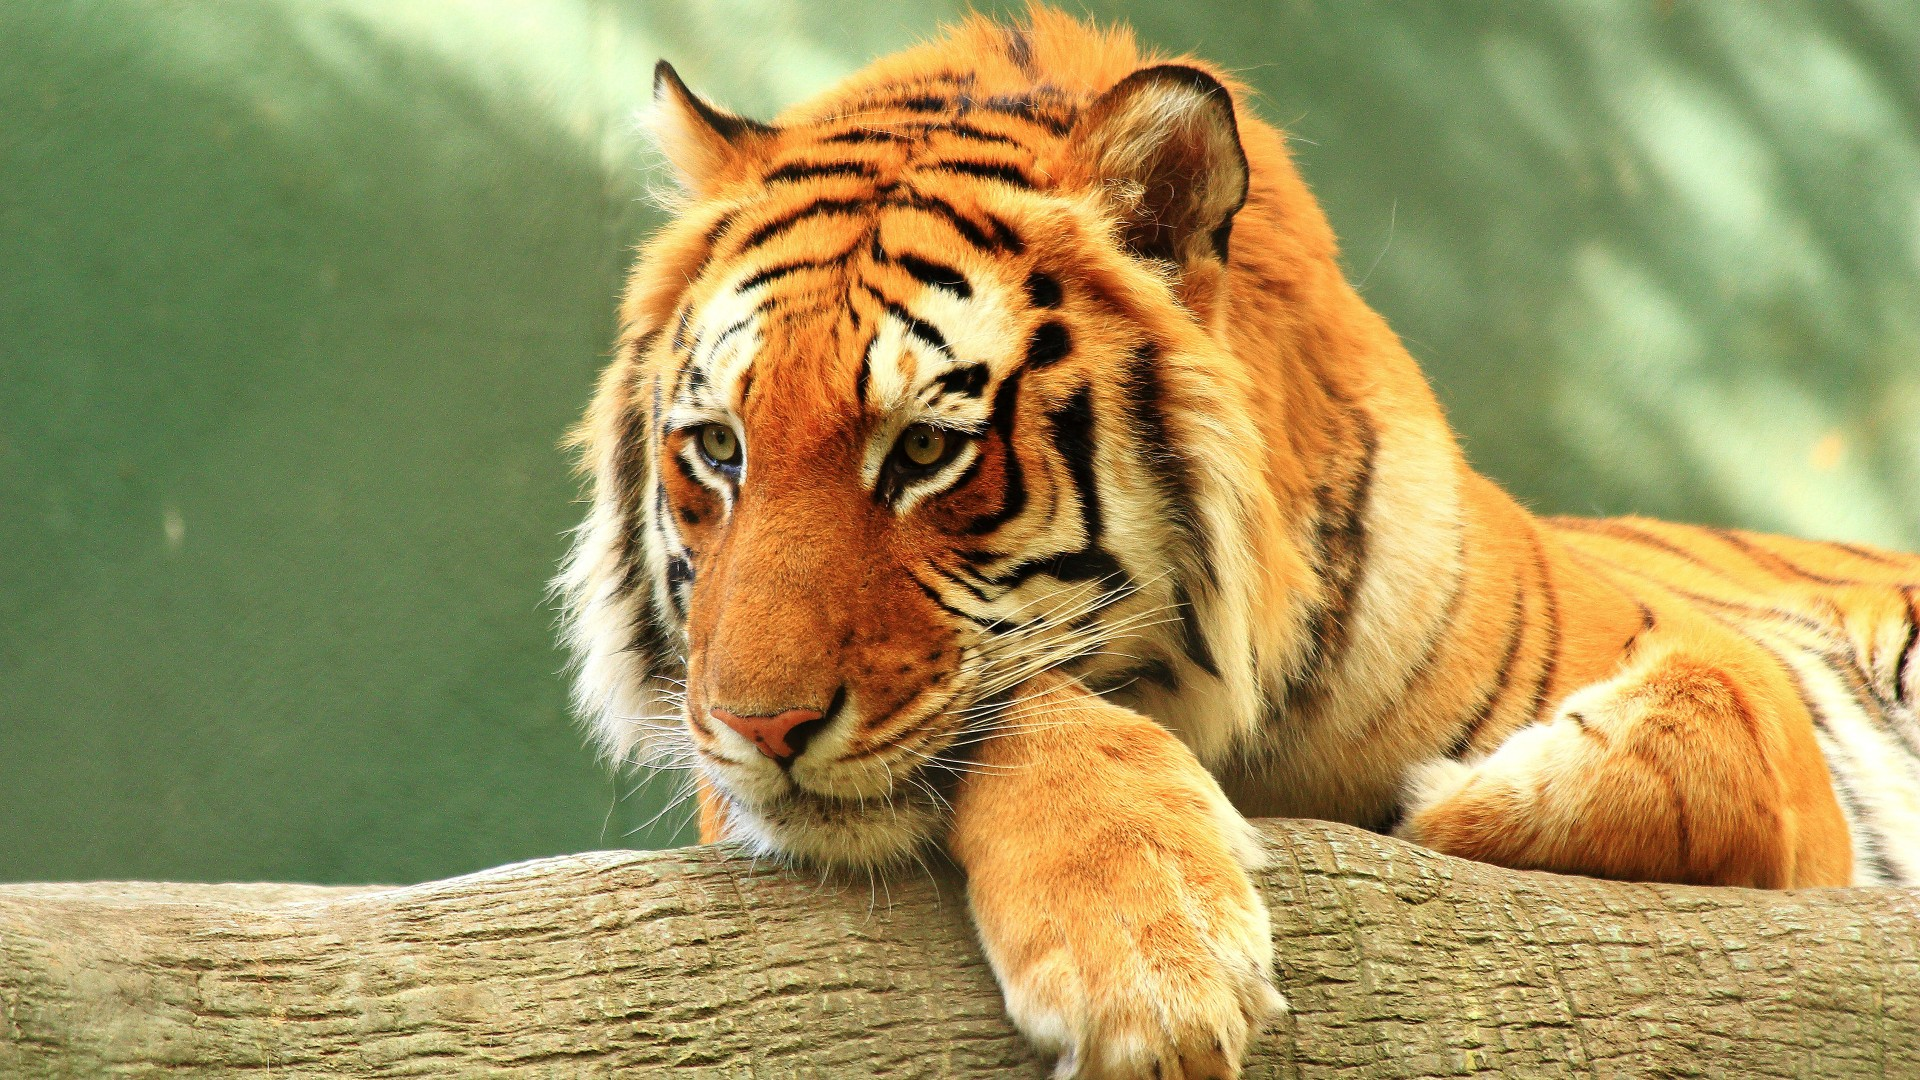 Iphone 5s Wallpapers Full Hd Tiger Close Up 4k Wallpapers Hd Wallpapers Id 20894